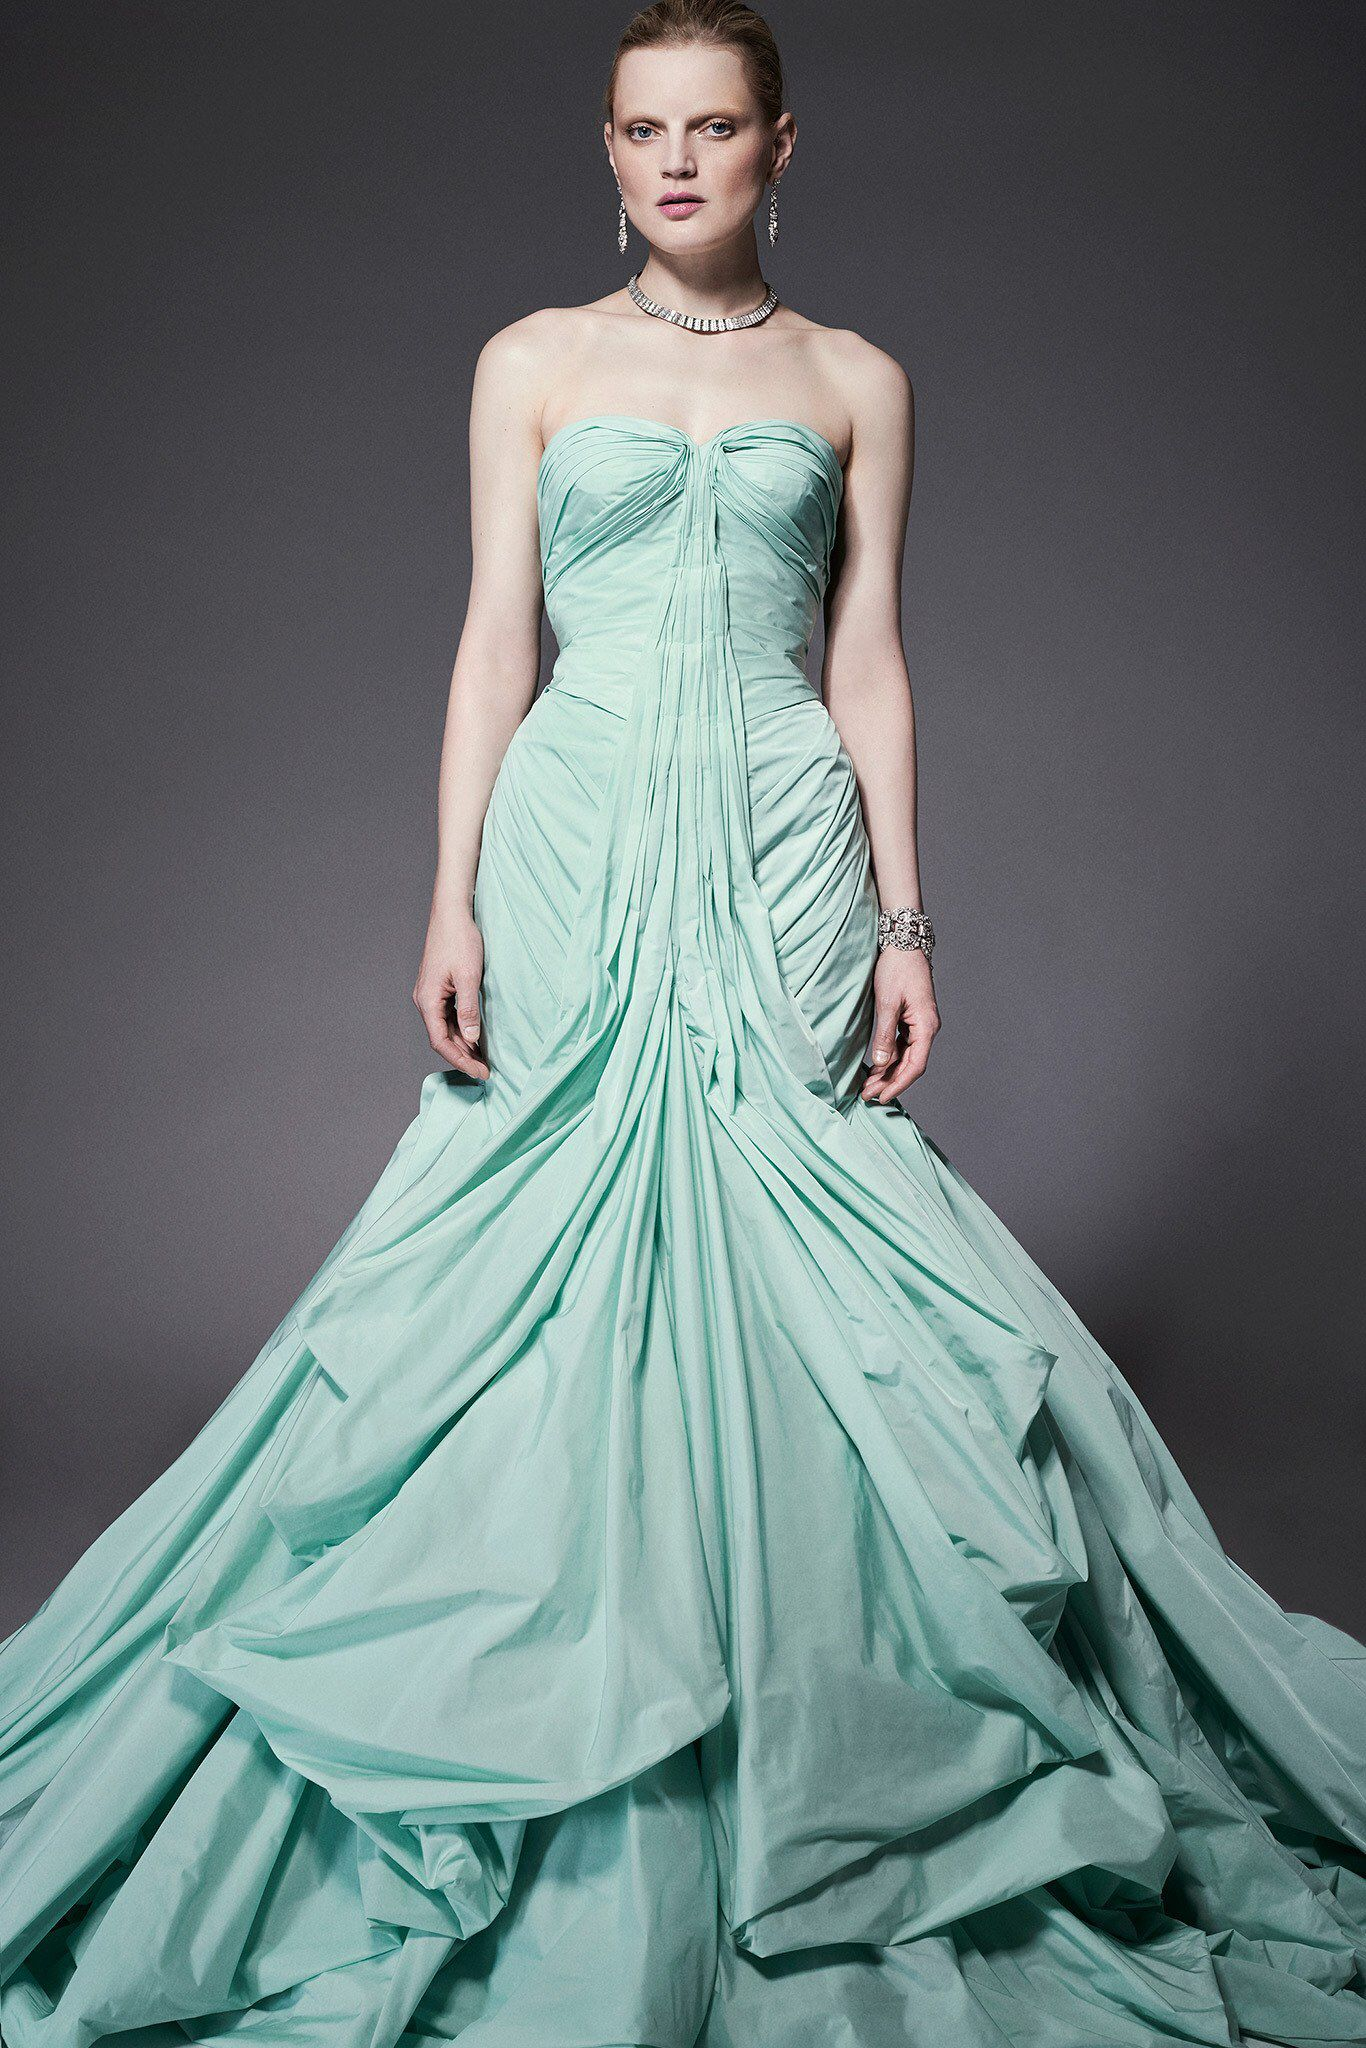 Zac posen wedding dress  Zac Posen Resort  Fashion Show Collection    Pinterest